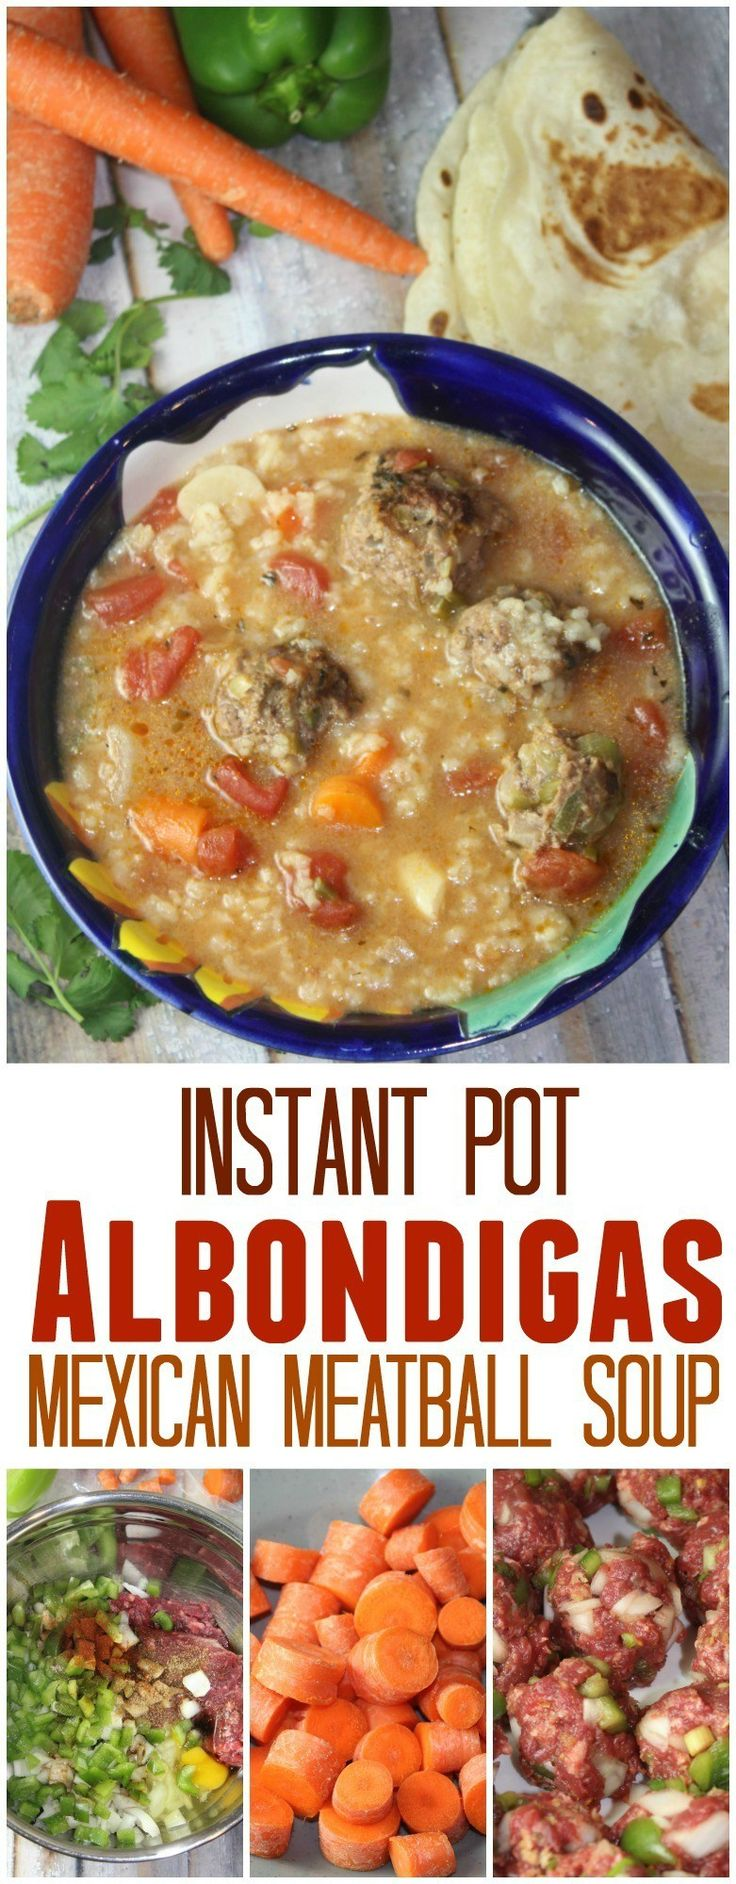 albondigas mexican meatball soup in the instant pot. Black Bedroom Furniture Sets. Home Design Ideas